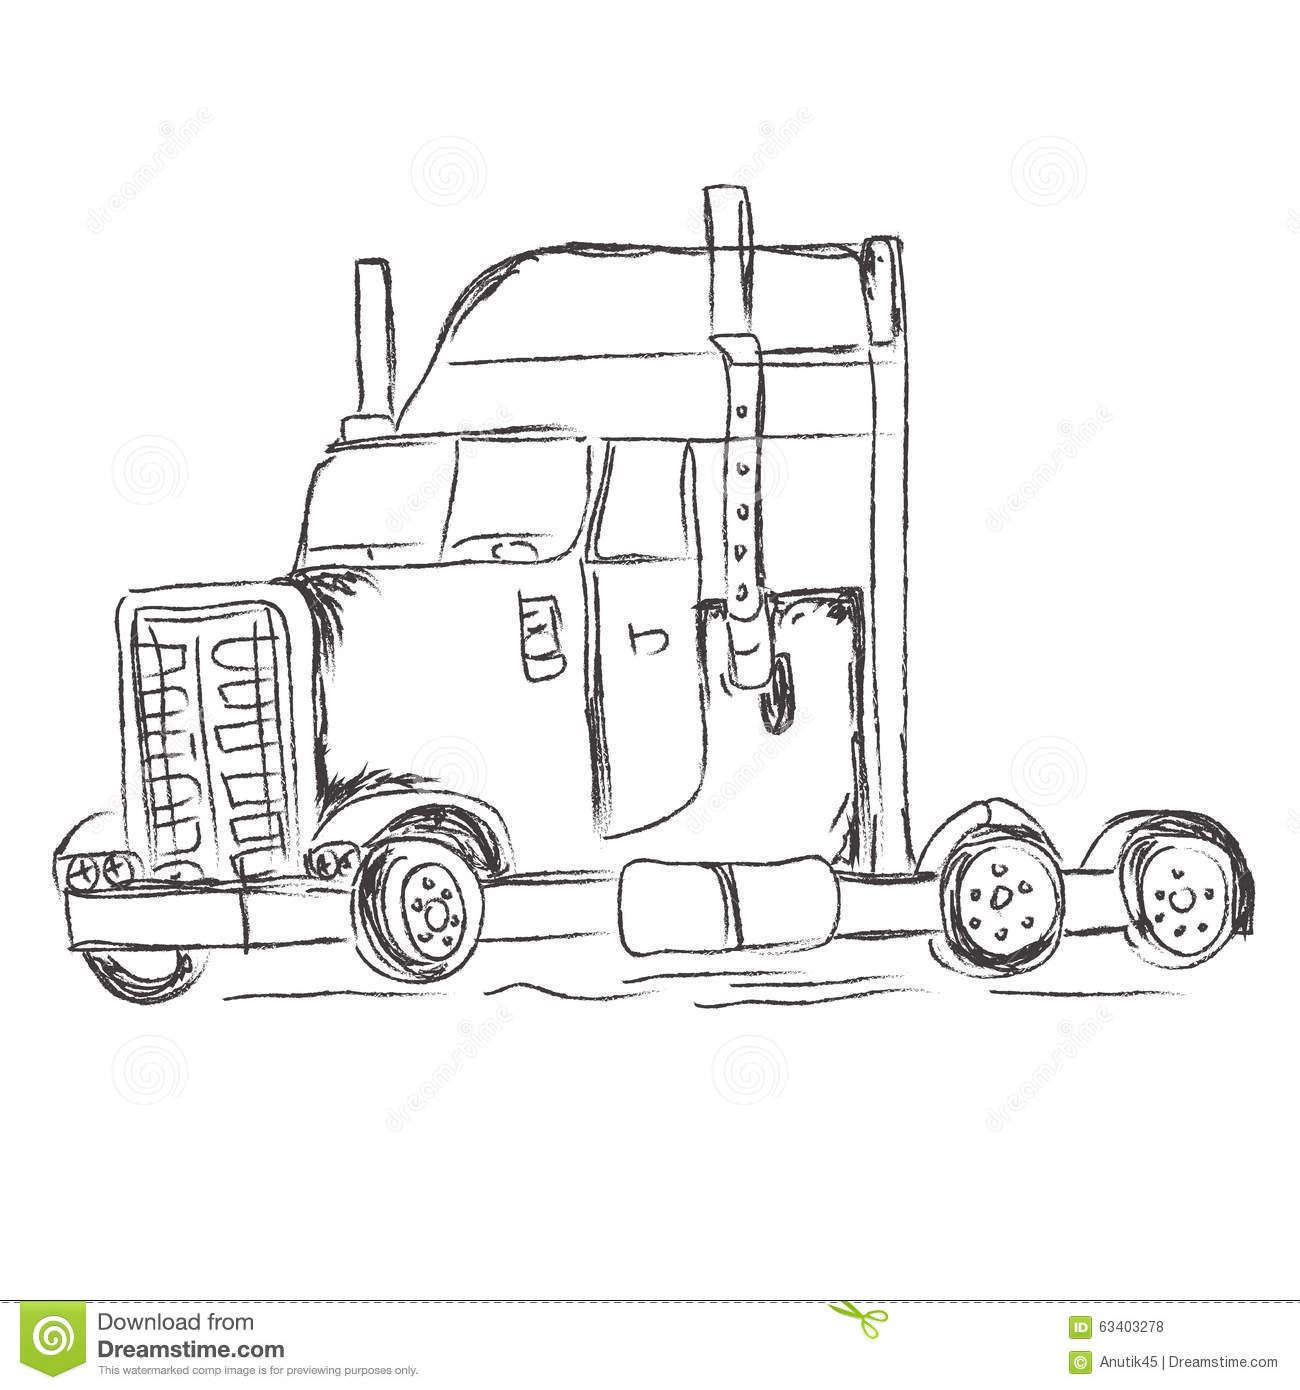 71712 besides 20170708094958 coloring Book Review Metacritic together with Stock Illustration Truck Sketch Hand Drawings Vector Illustration Car Flat Style Image63403278 likewise Royalty Free Stock Image High Speed Speedometer D Image View Image31183916 as well Illustration Stock Ic Nes D Auto  C3 A9cole Image44308514. on driving car illustration